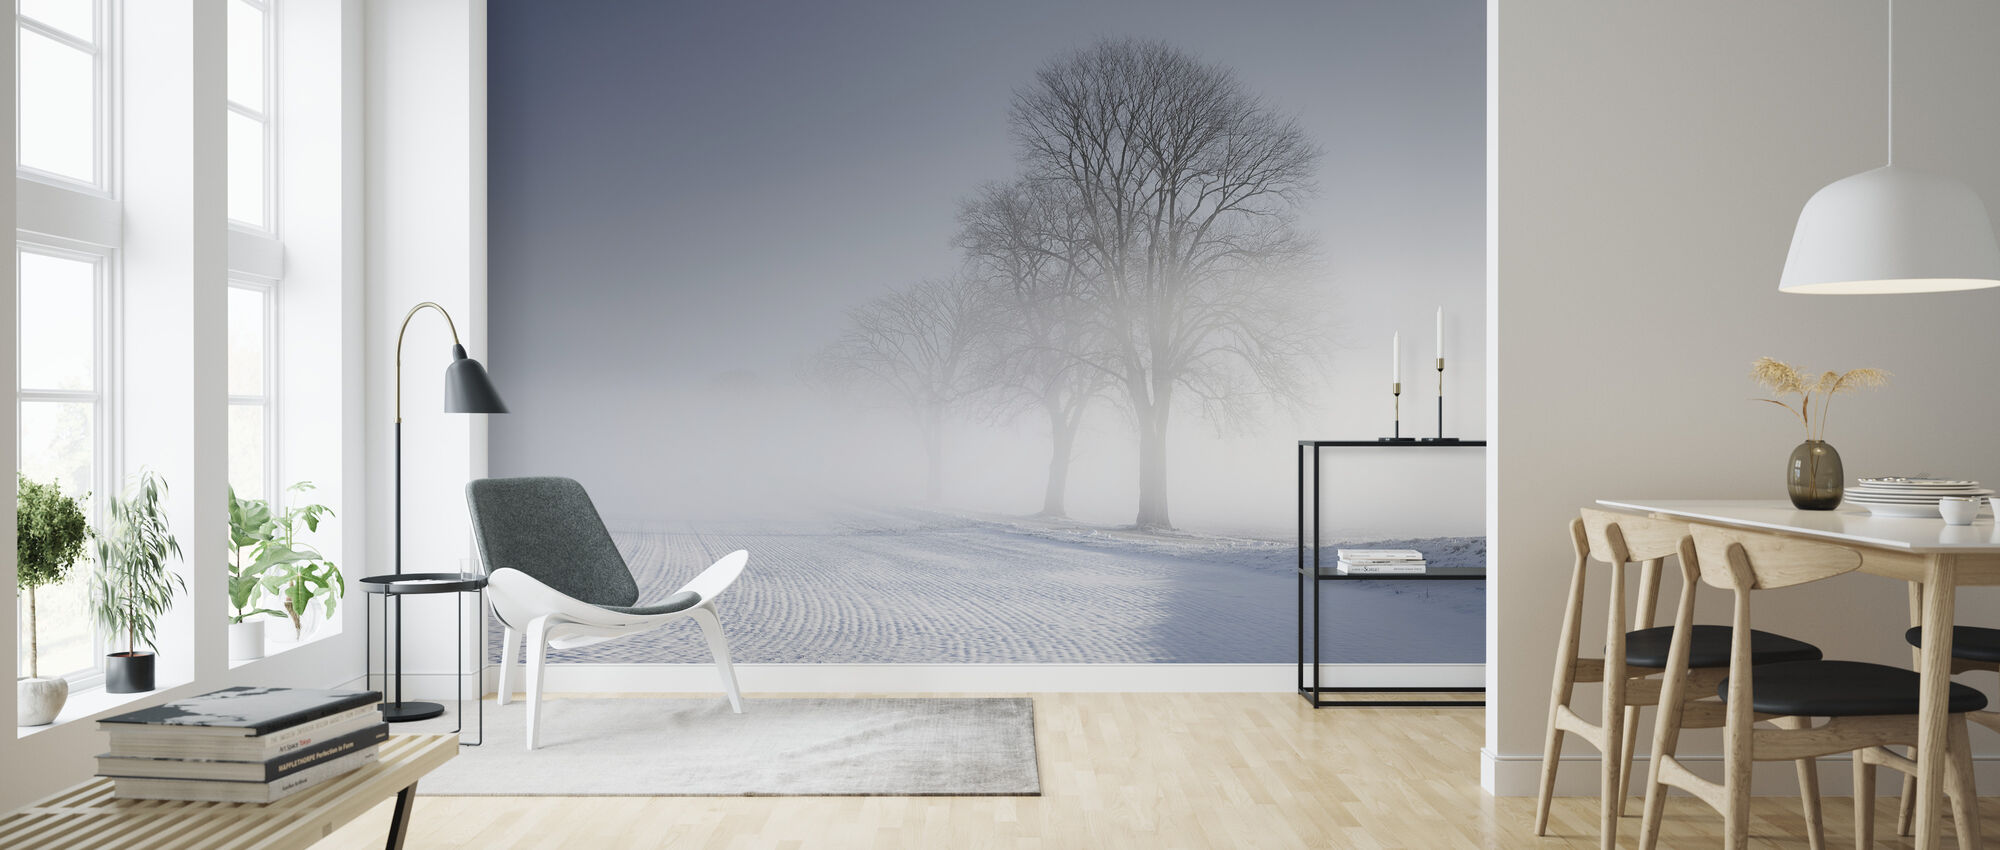 Winter Landscape in Skabersjö, Sweden - Wallpaper - Living Room